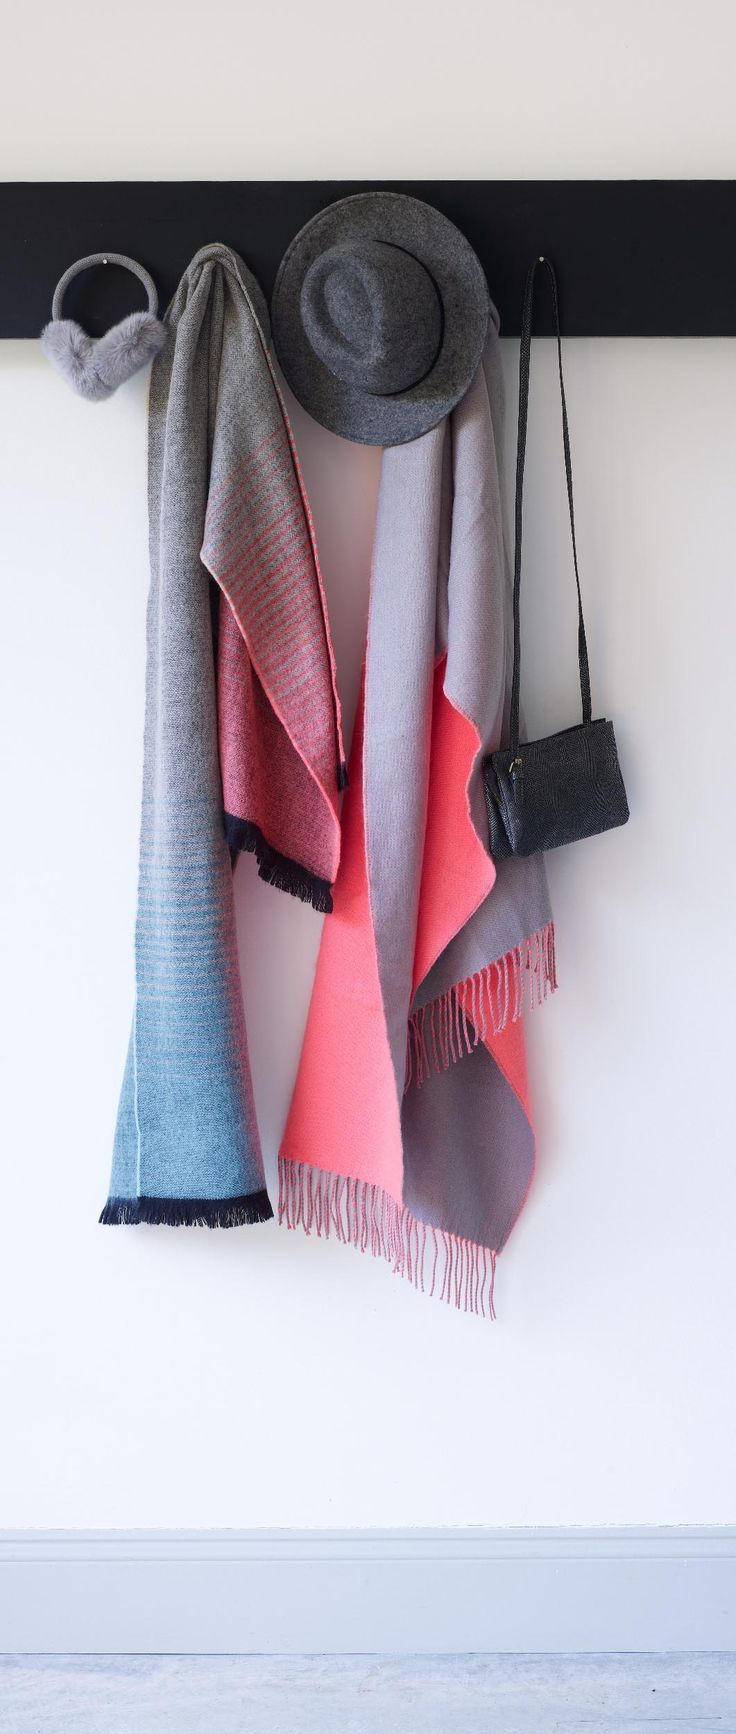 Power up for autumn in our Ombre Striped Scarf. With an ombre striped pattern and a contrasting black fringe, this scarf will instantly inject colour and warmth to your outfit.